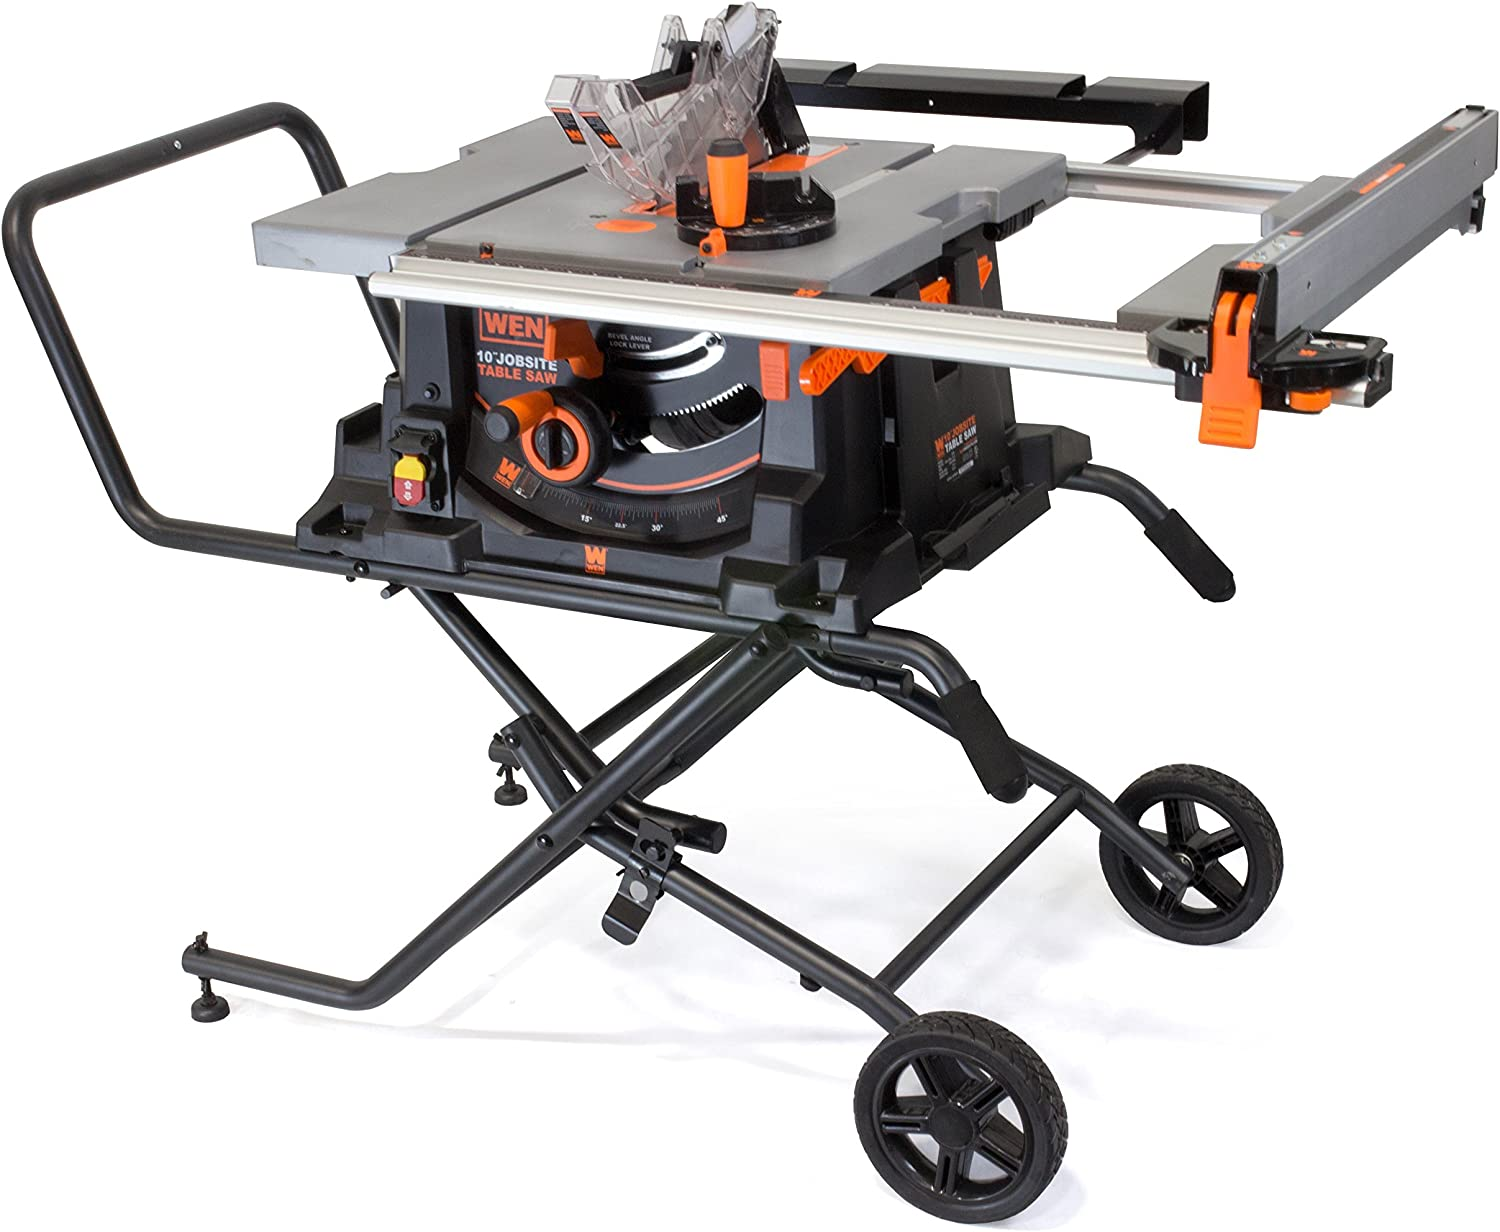 WEN 3720 15A Jobsite Table Saw with Rolling Stand, 10""